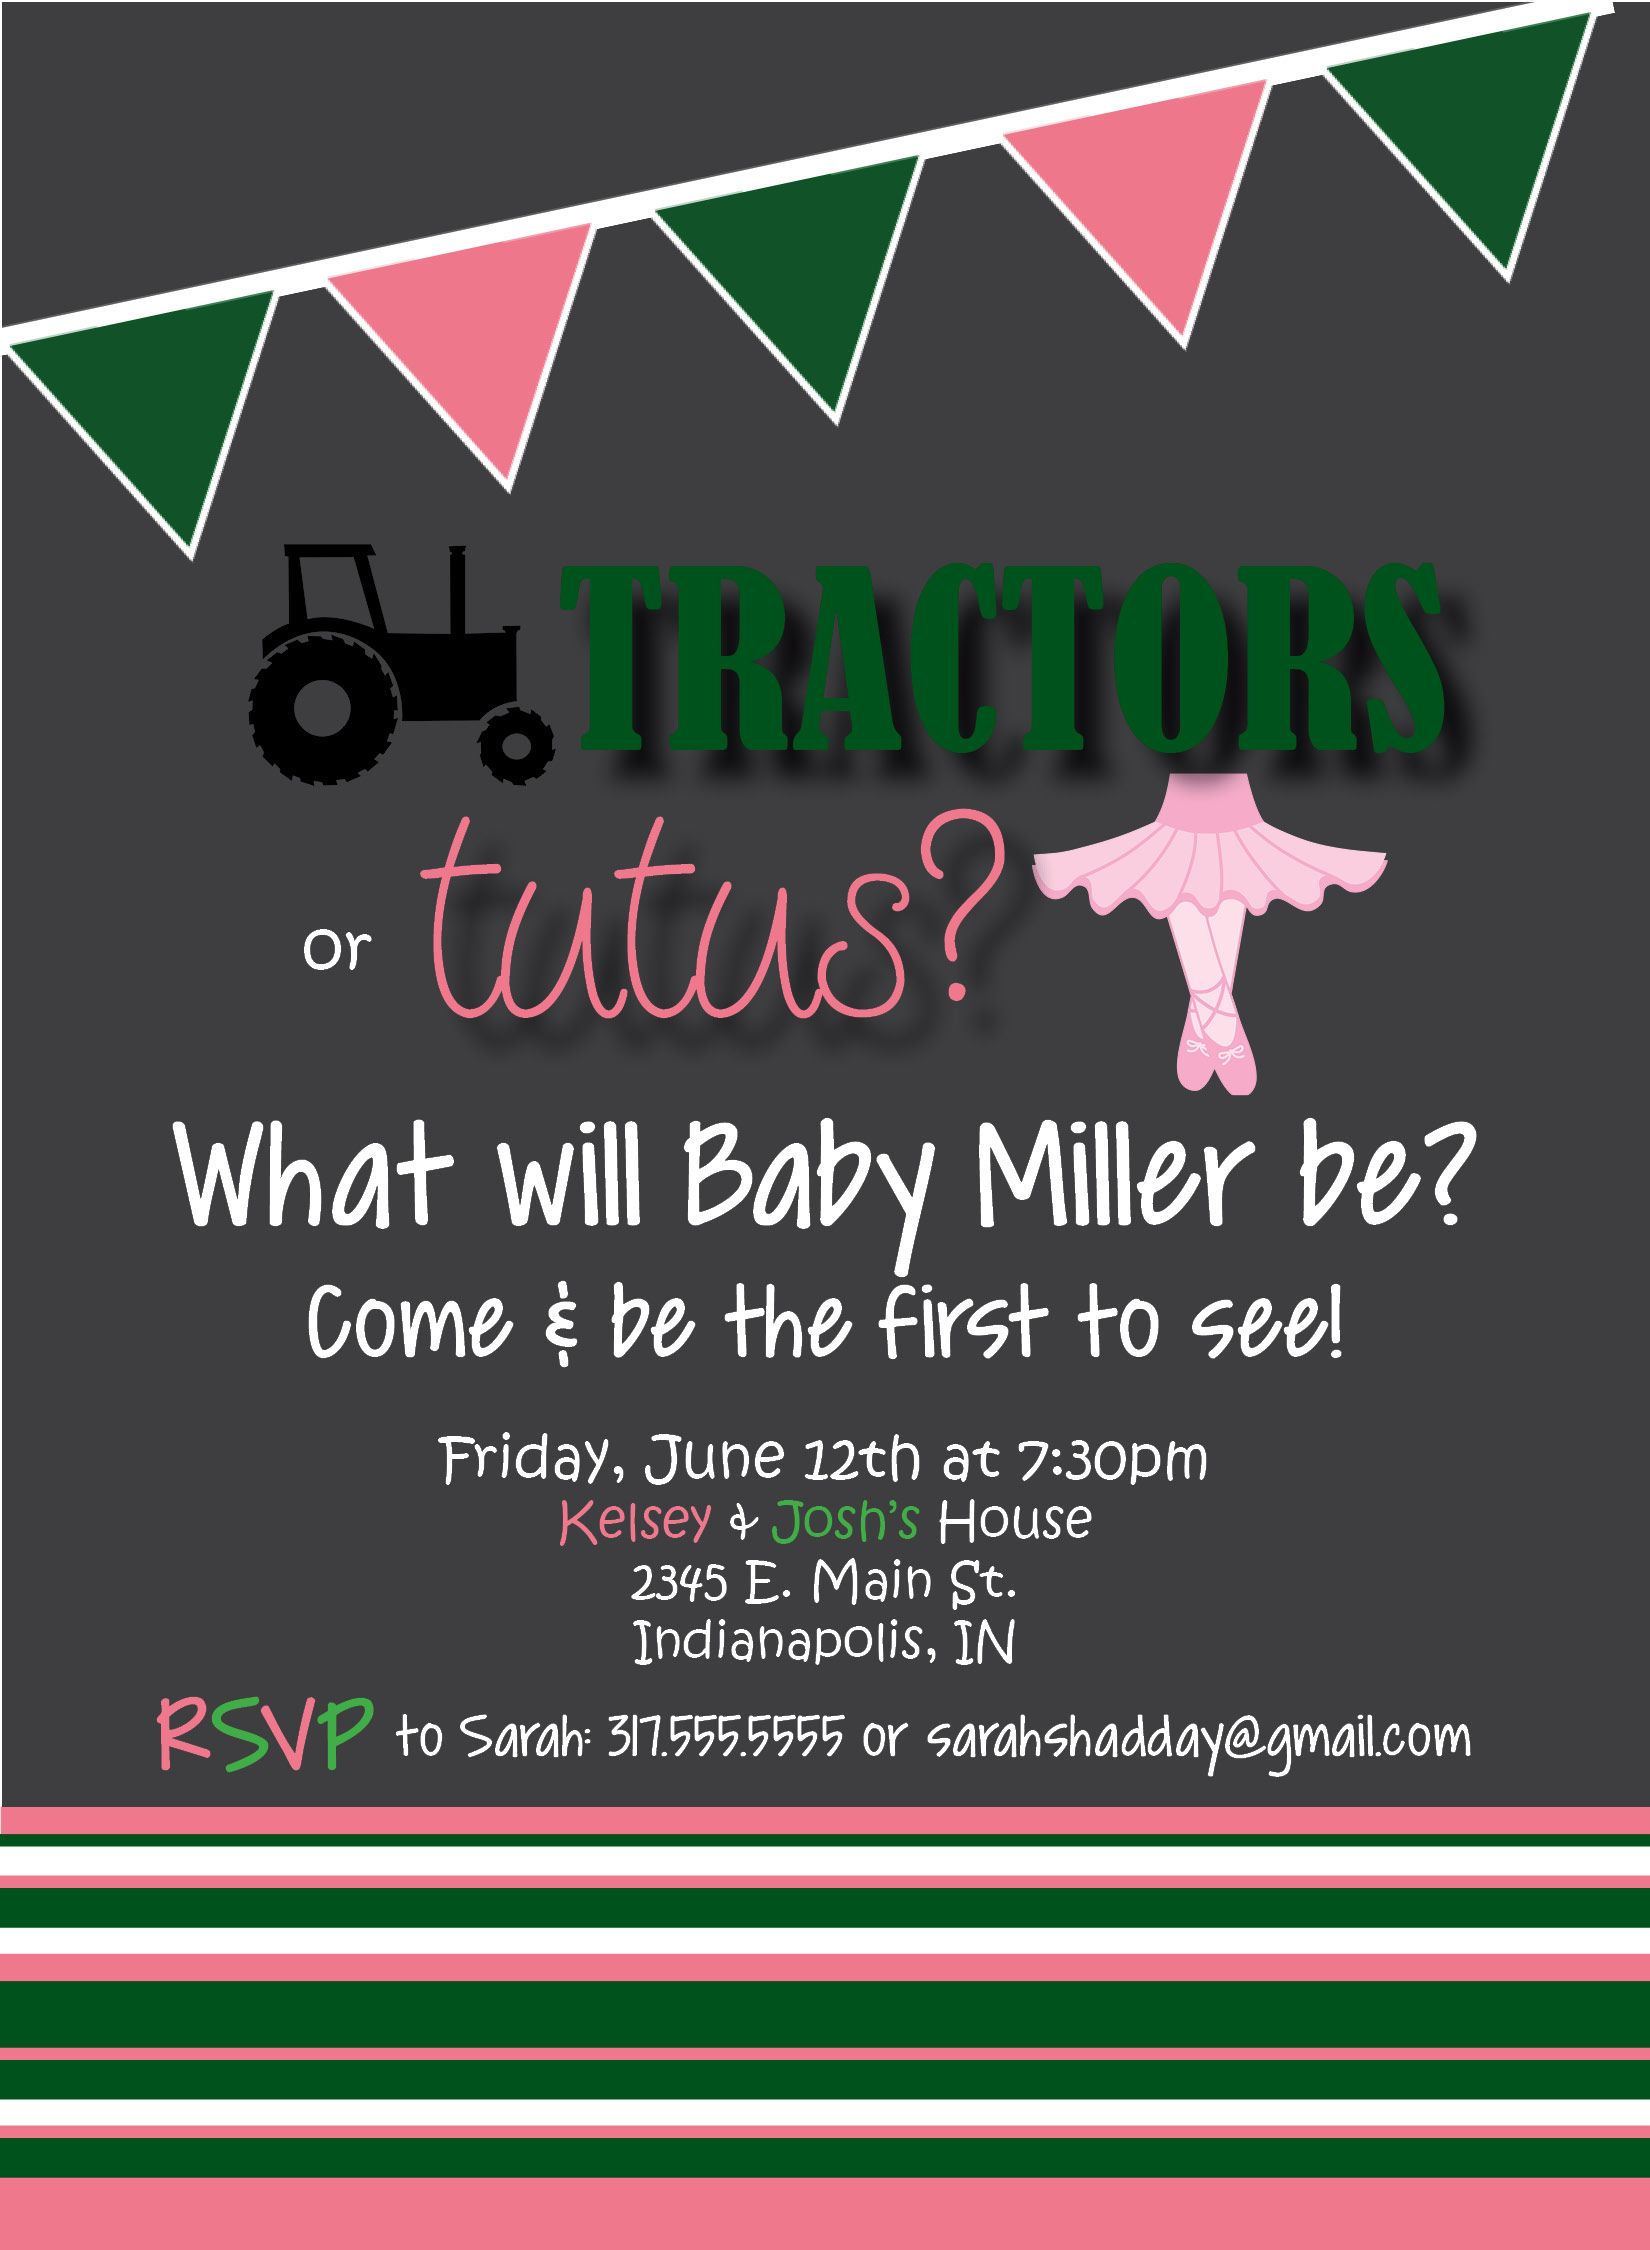 Tractors or Tutus Gender Reveal Party Invitation! Visit ...